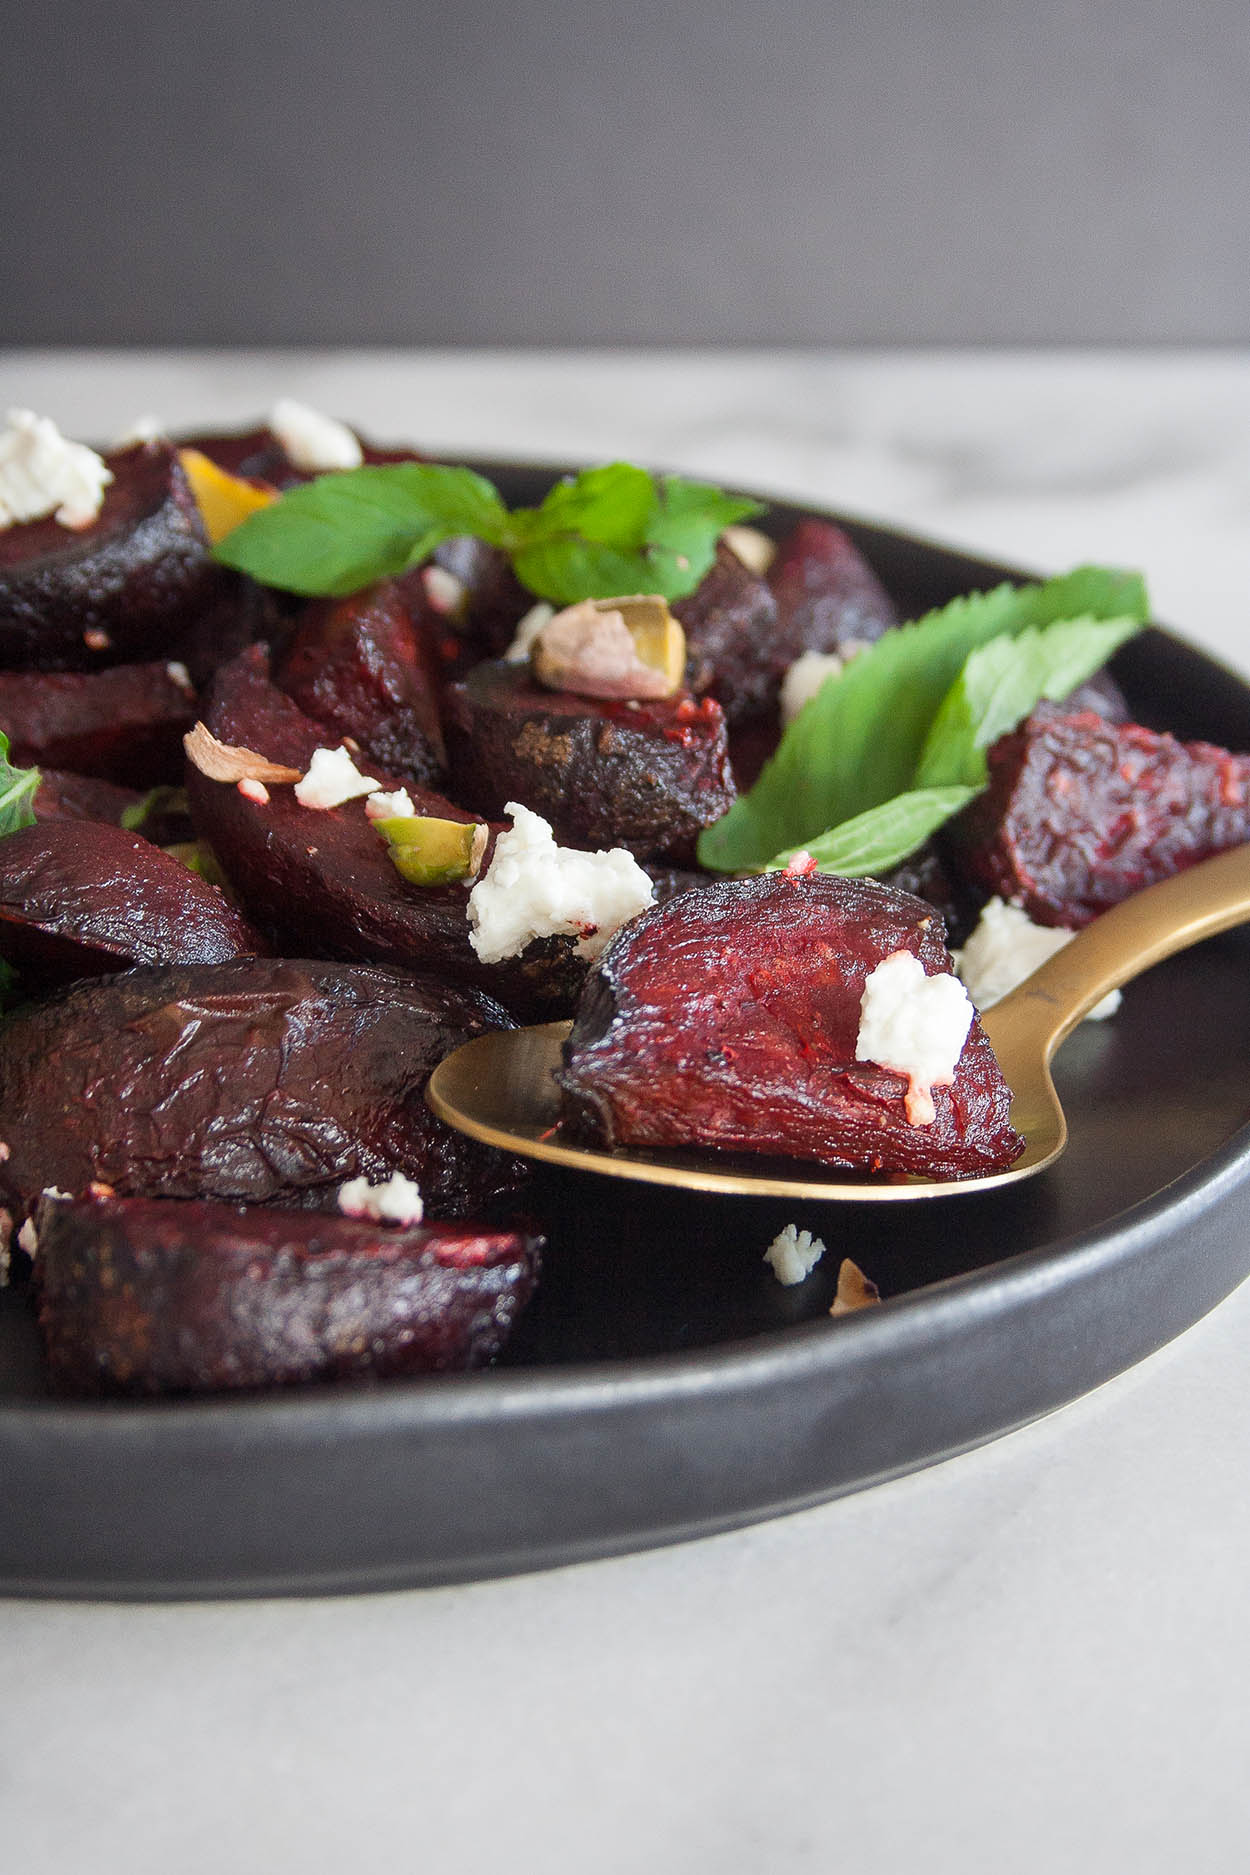 roasted beet and goat cheese salad with pistachios and mint + 6 more farmer's market recipes | healthy recipes, farmer's market produce, fresh recipes, summer food |